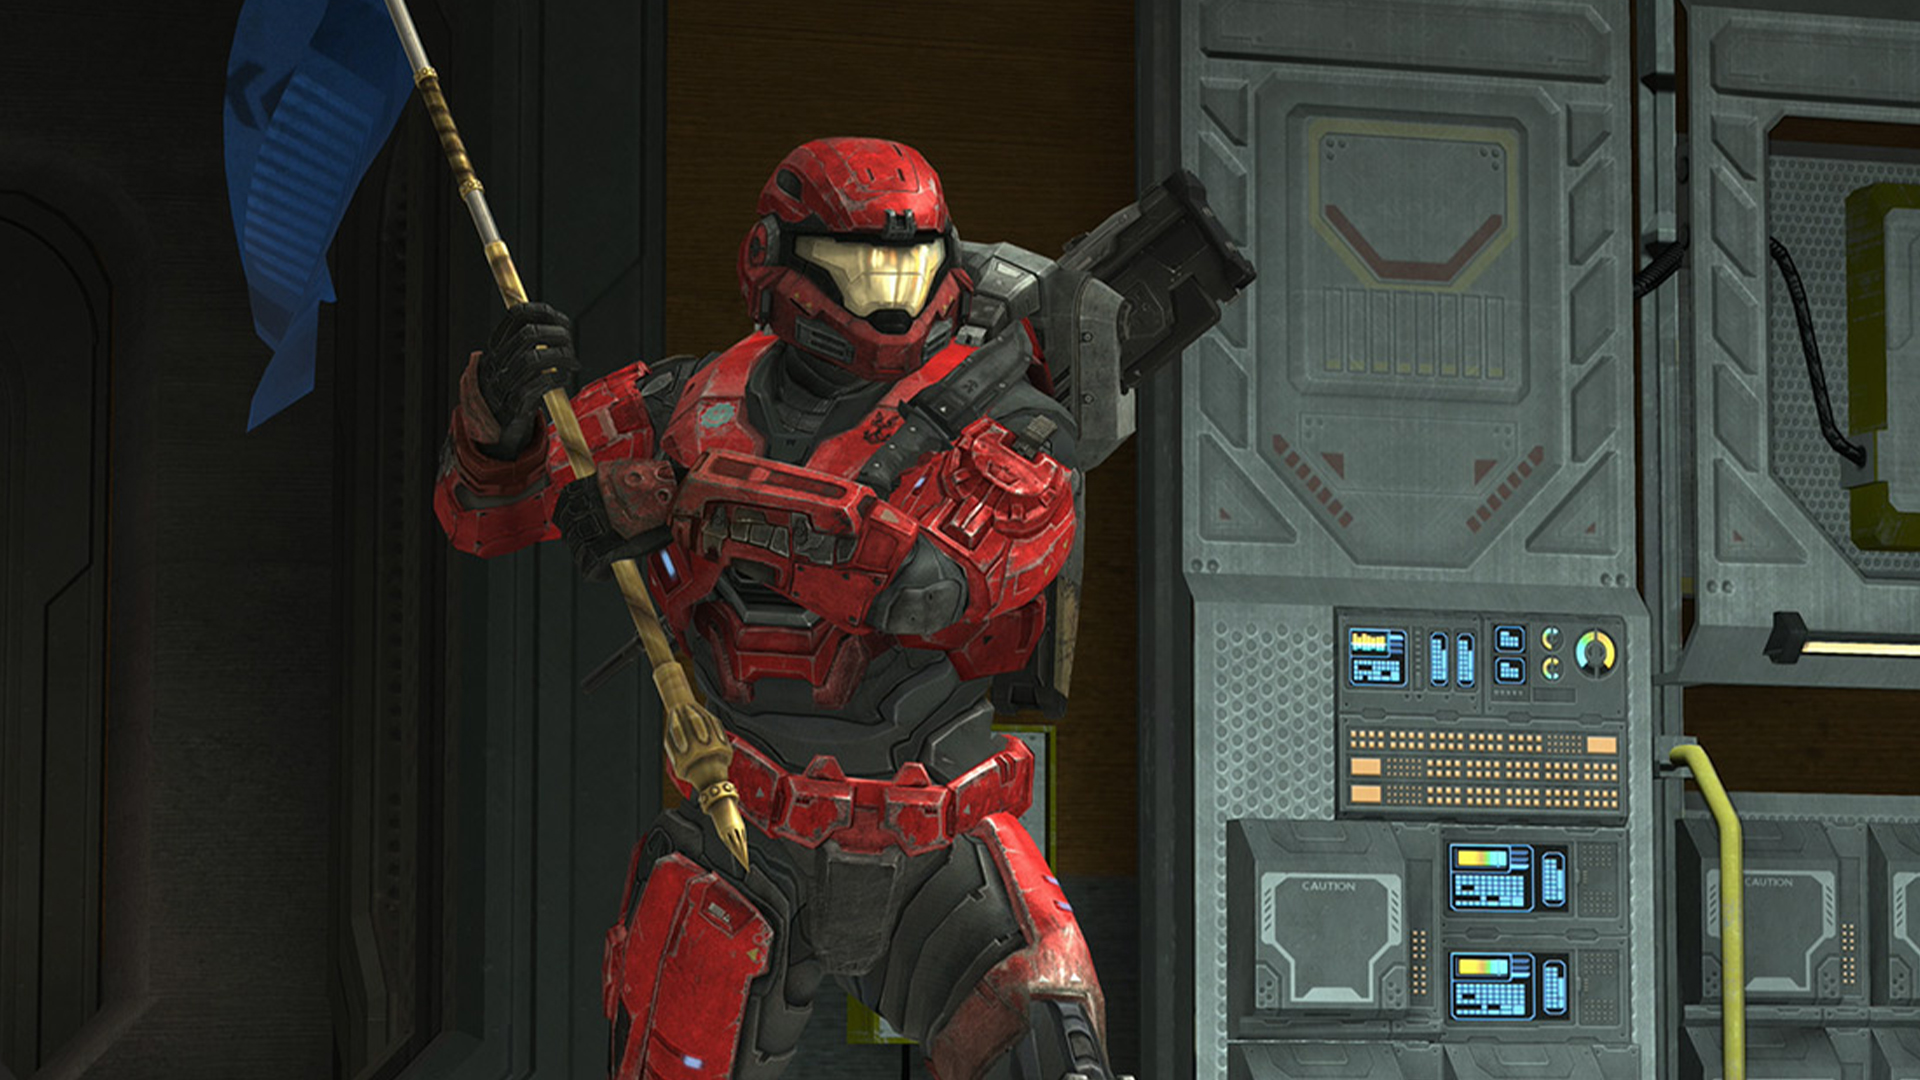 Halo Reach Release Times Master Chief Returns To Pc In